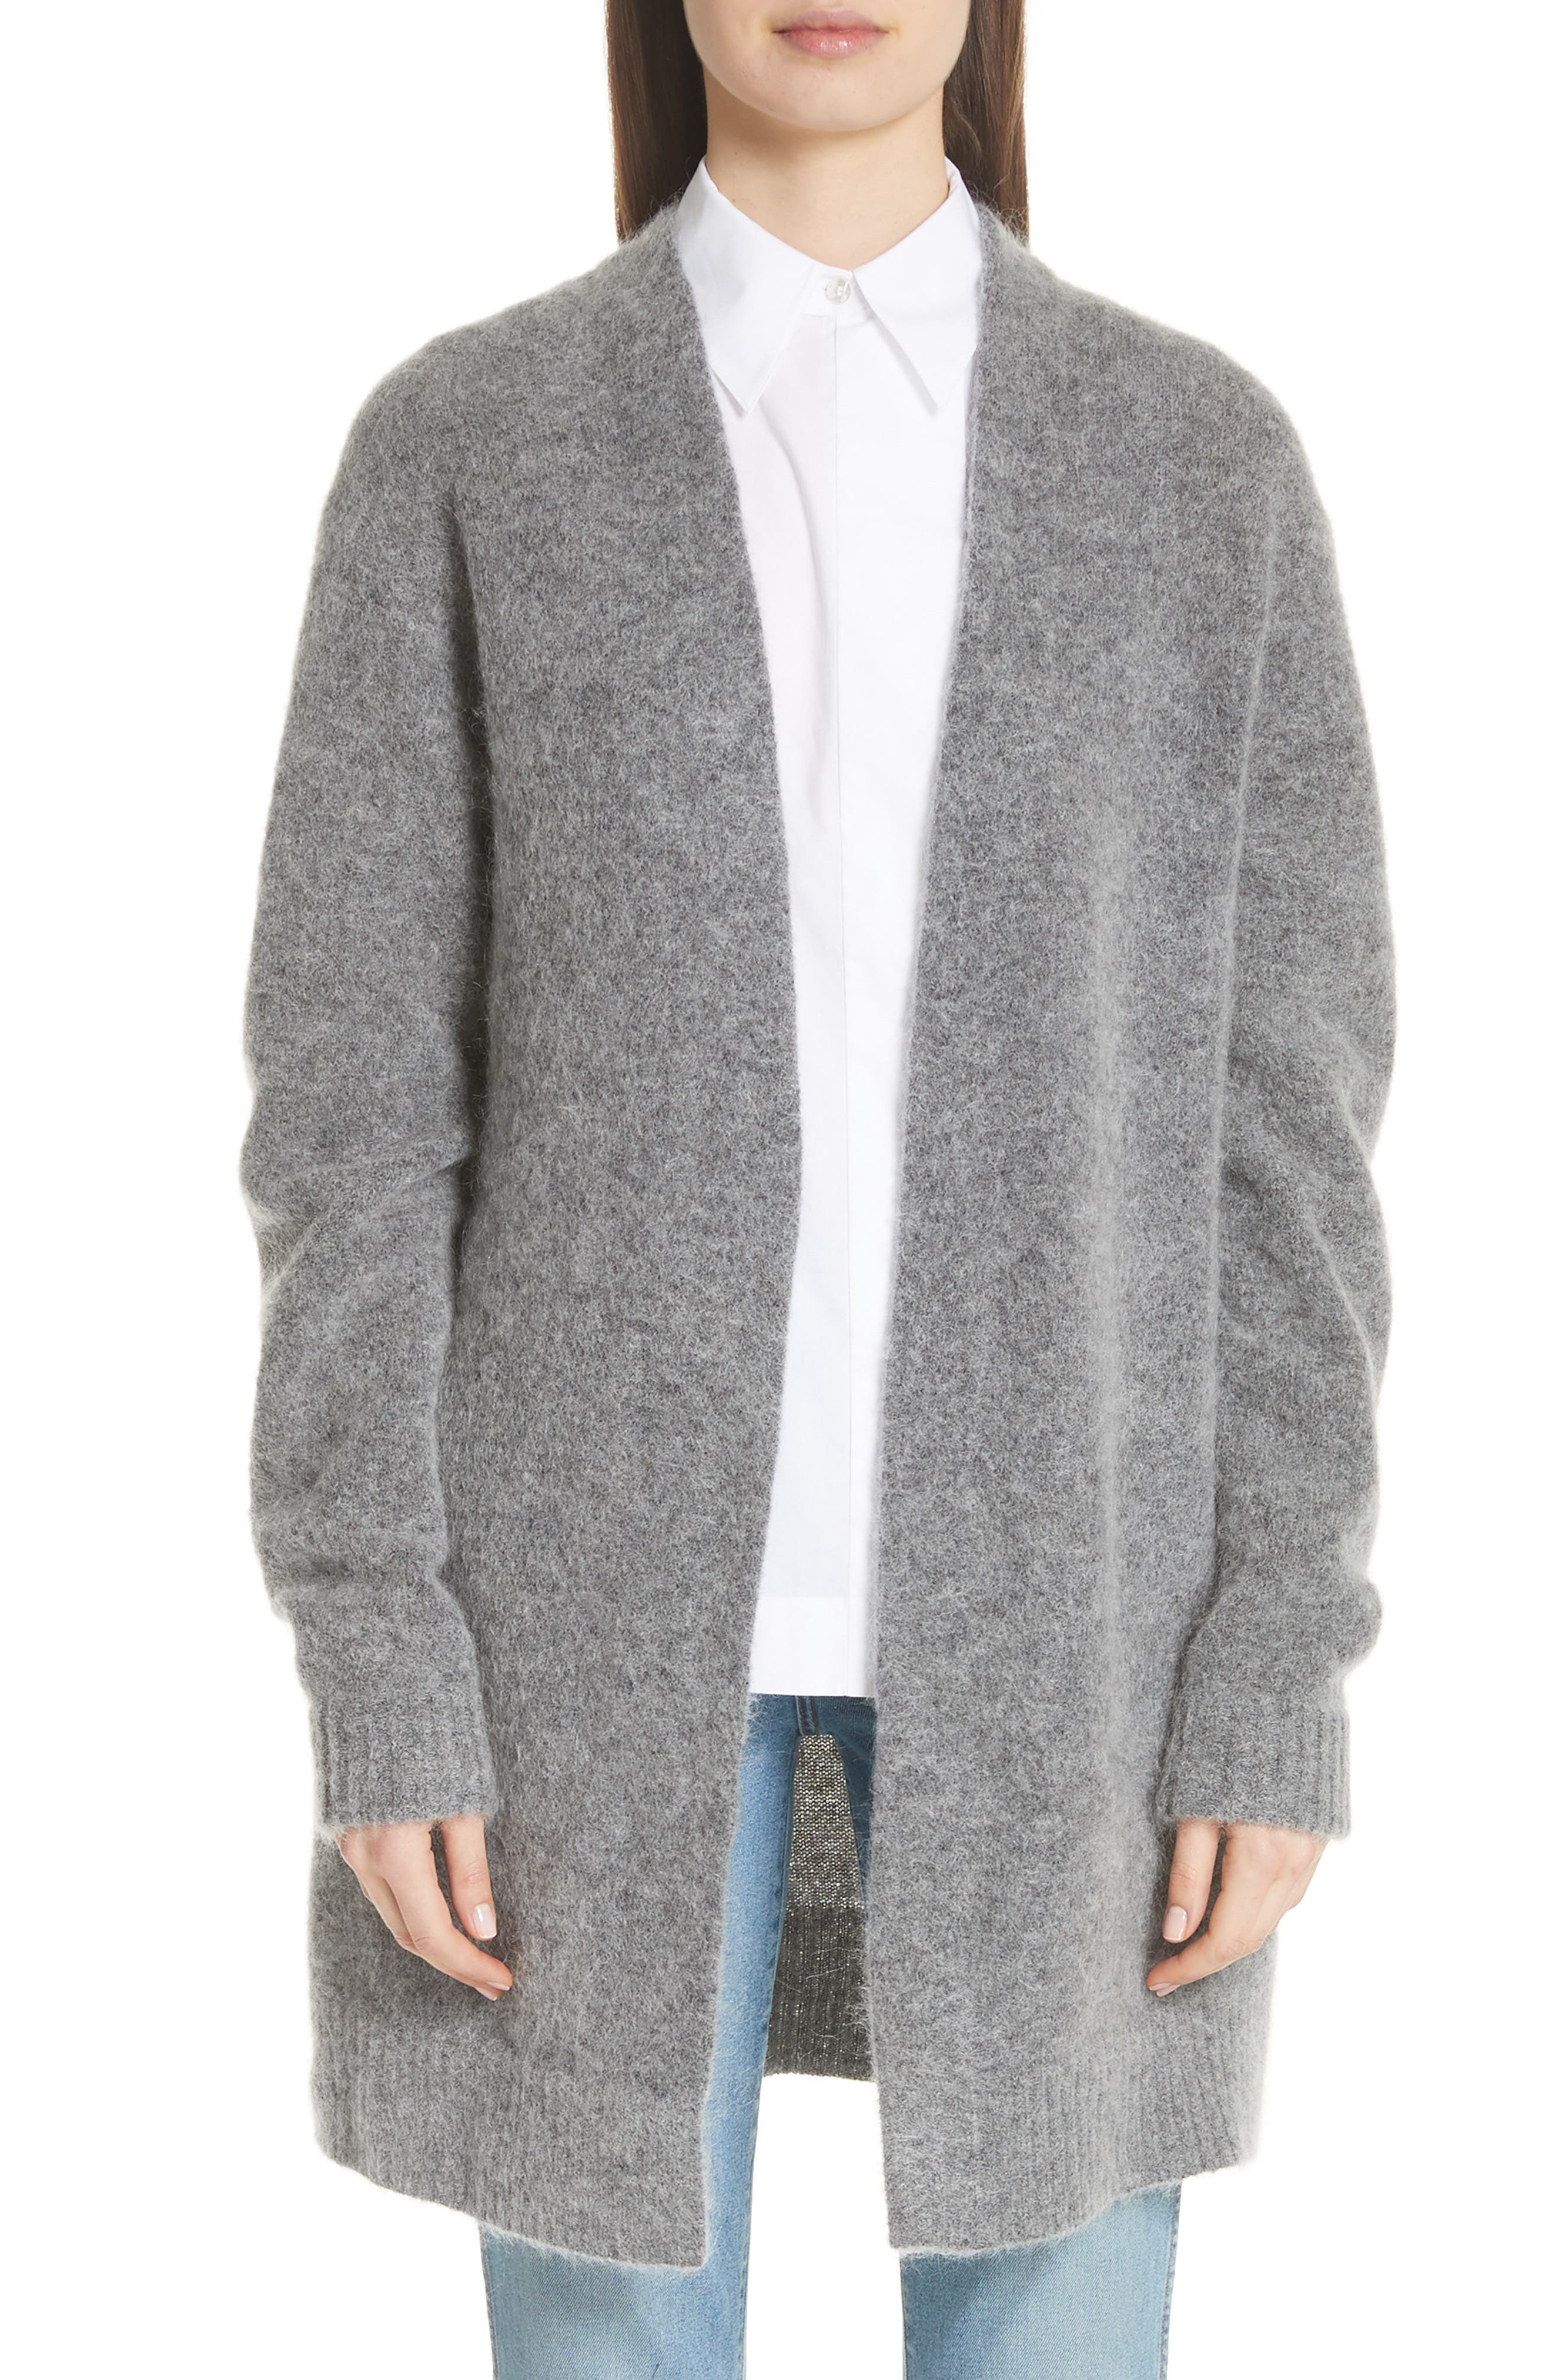 Raya Wool & Mohair Blend Cardigan in Grey Melange